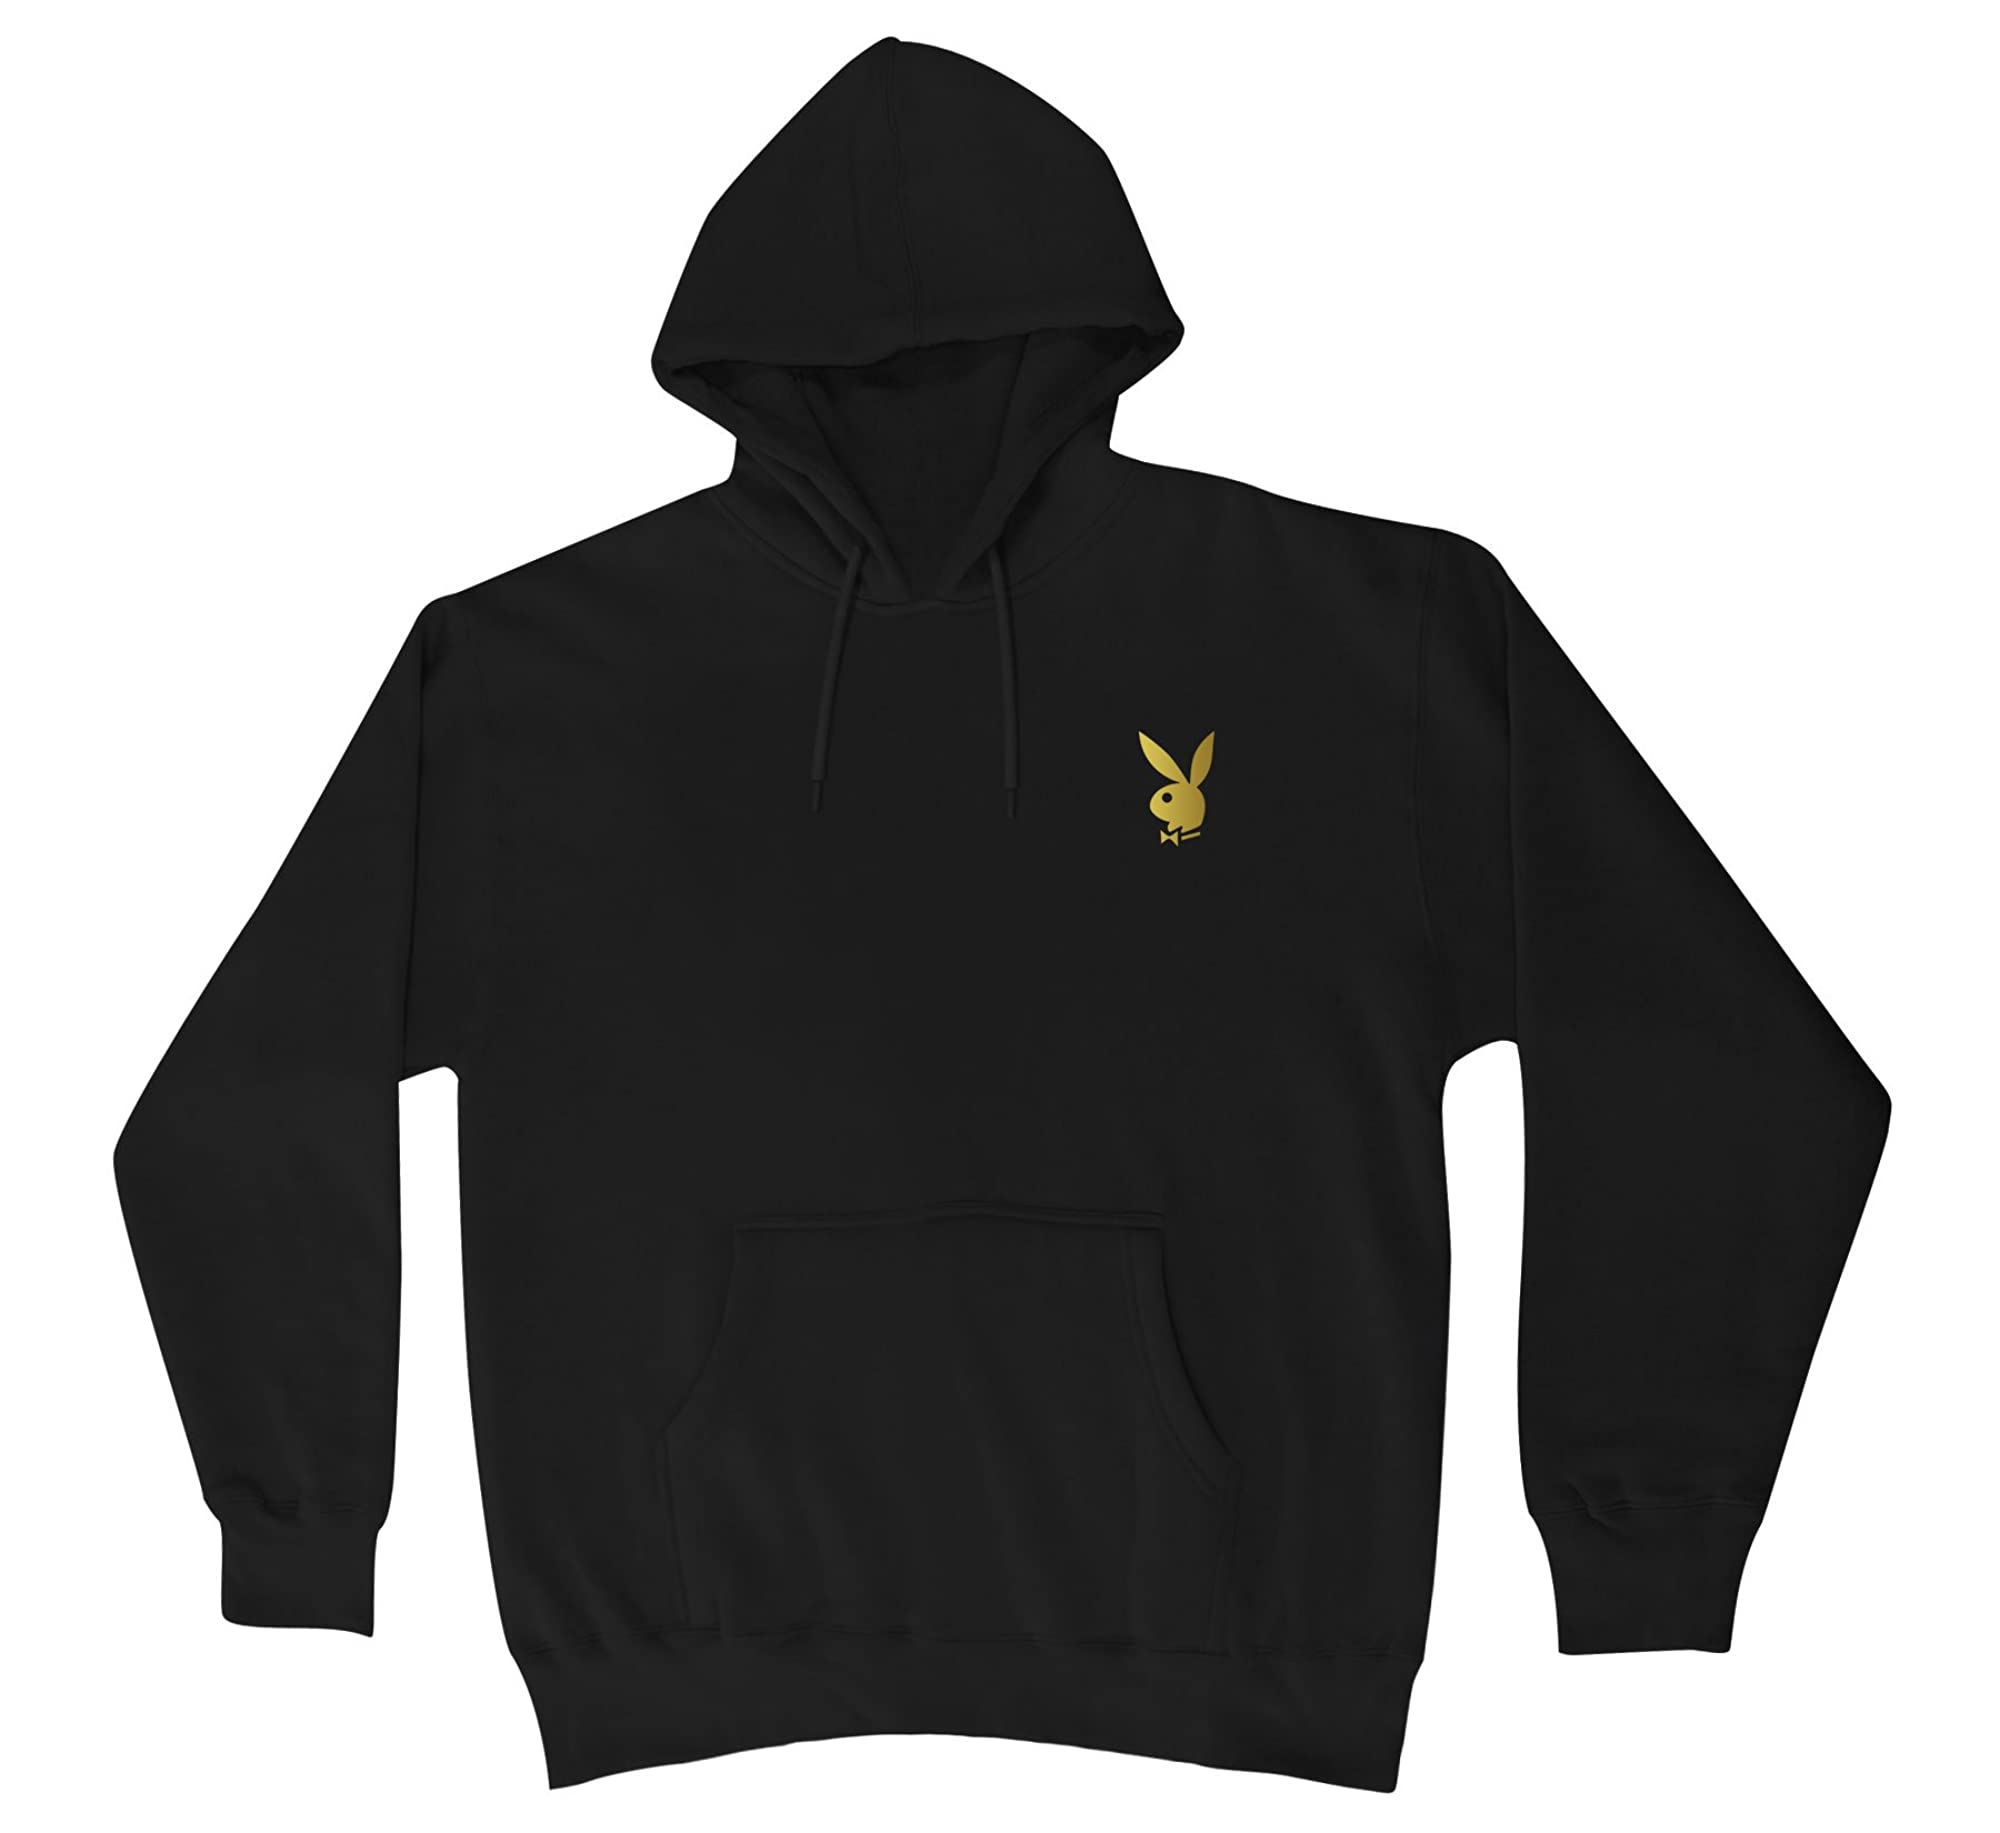 Playboy Gold Bunny Hooded Sweater New Black Shirts